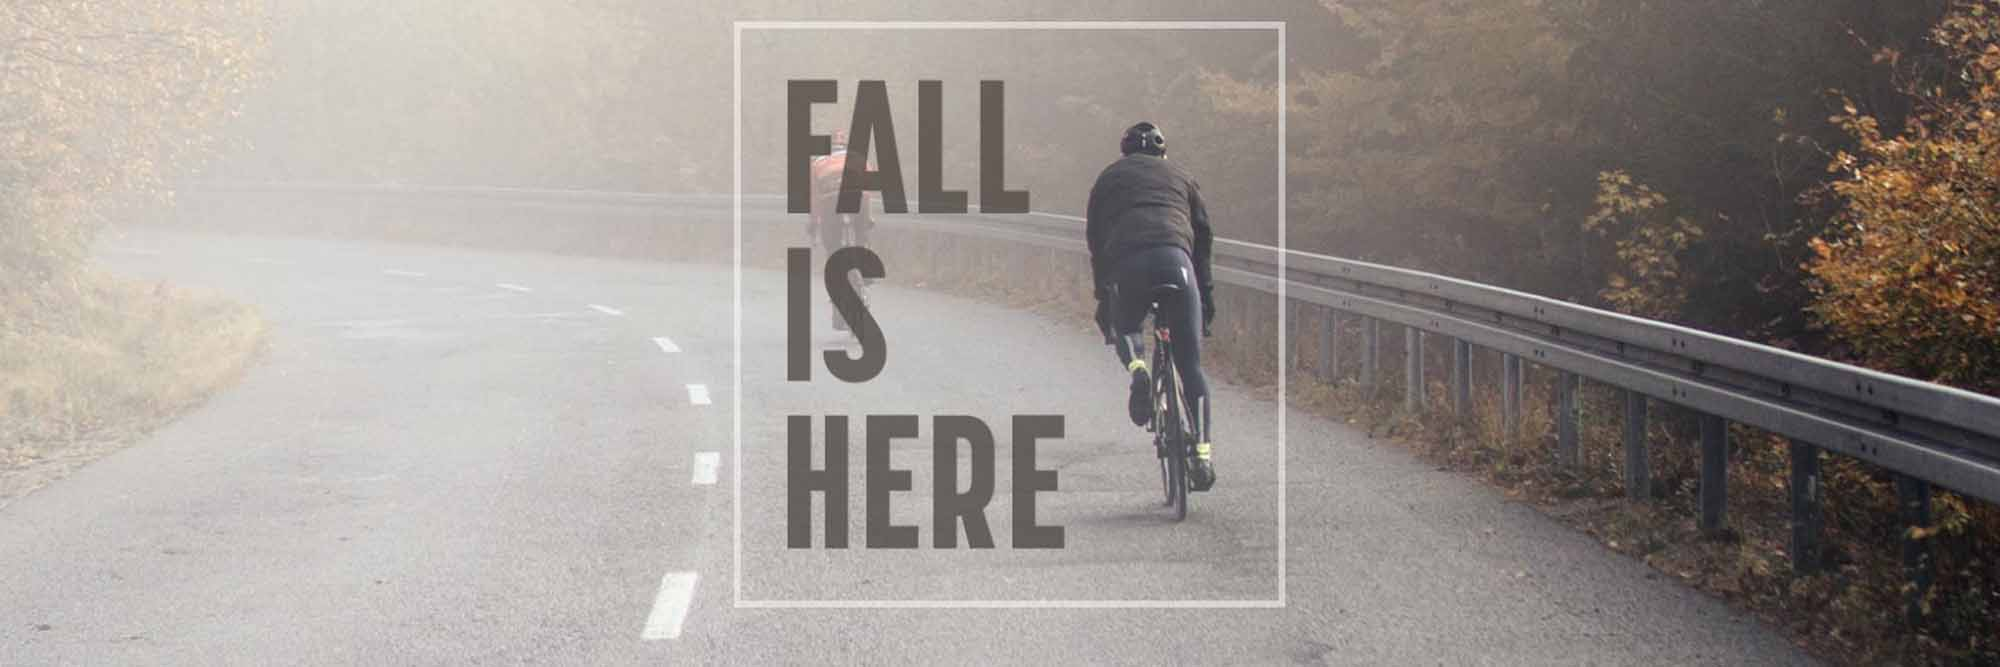 Gear Up for Fall Weather Riding